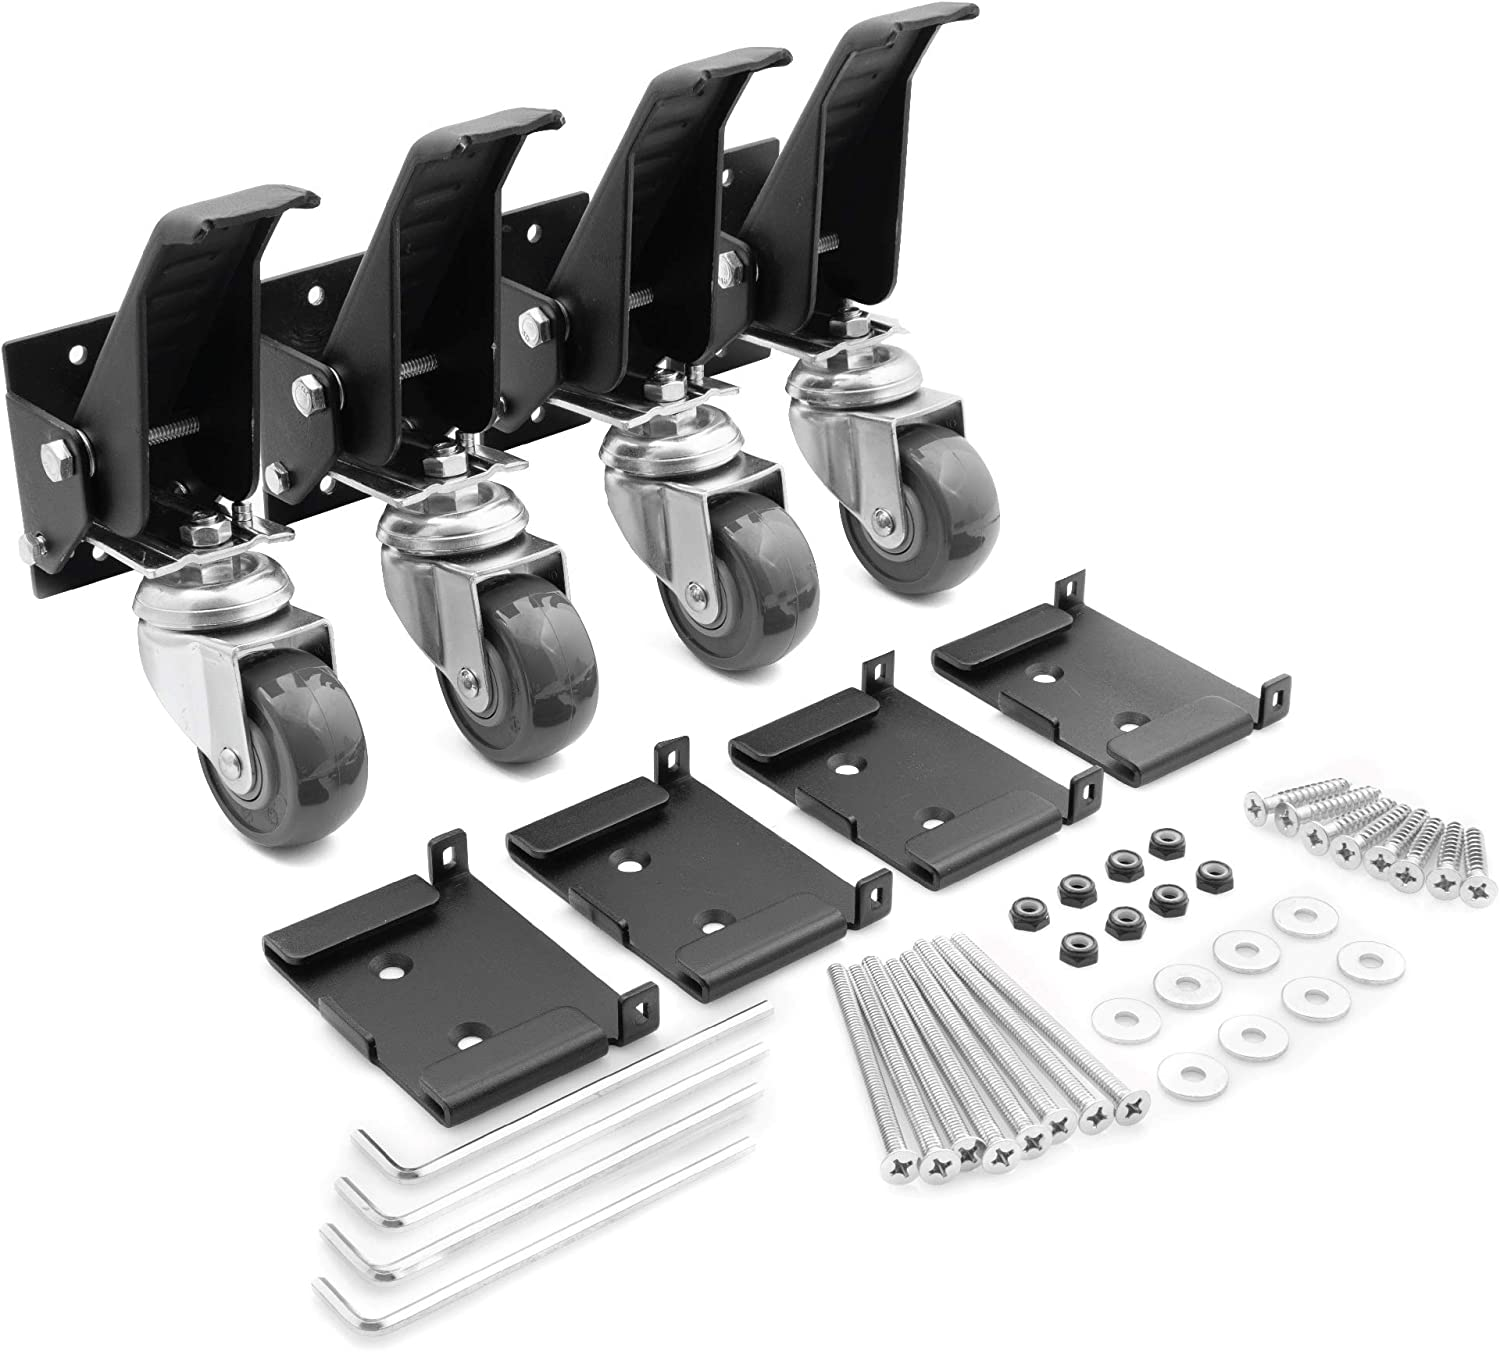 Workbench Caster kit 4 Heavy Duty Retractable Casters with 4 Pin Lock Quick Release Mounting Plates to Quickly Attach/Remove or Switch Casters from a Workbench to a Cabinet, Stand or a Machine.